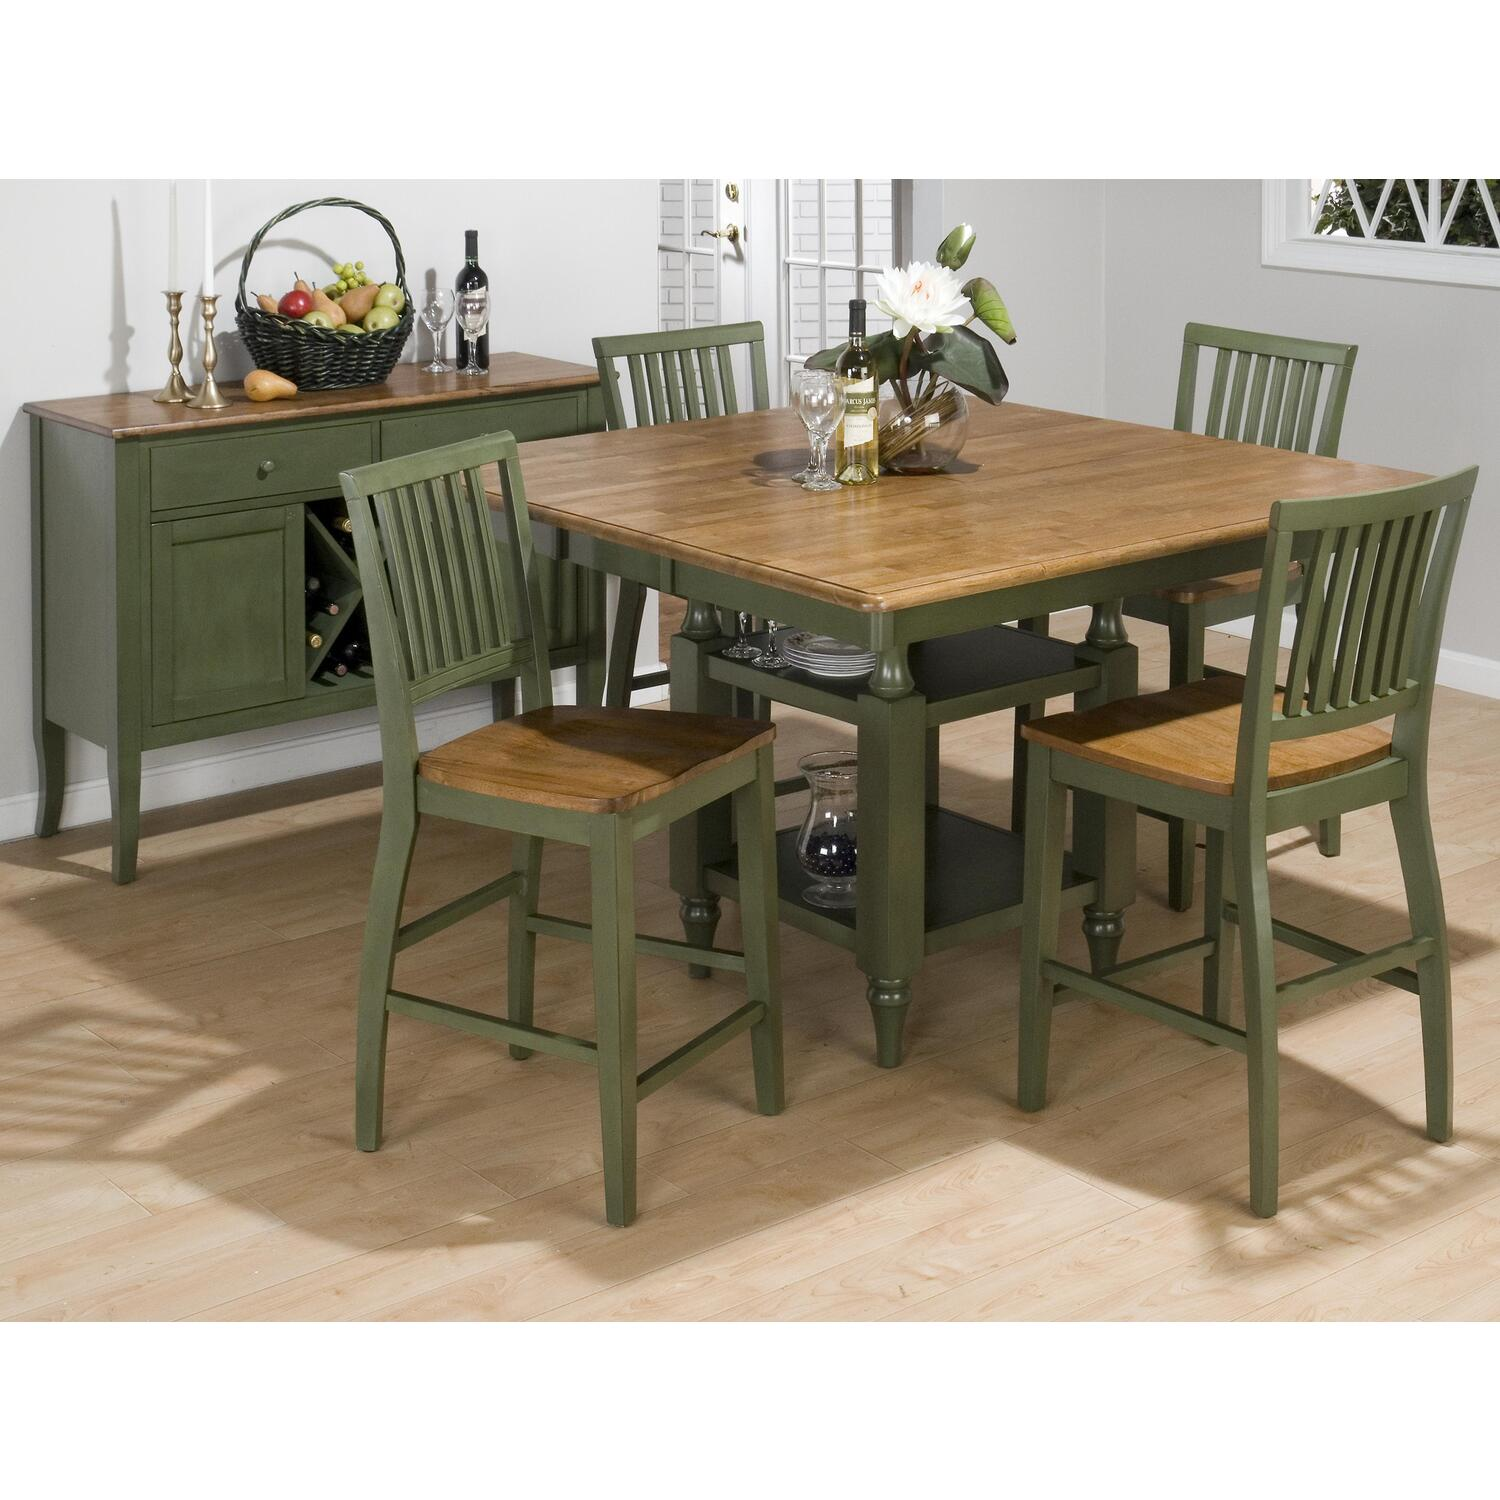 Jofran Antique Honey Vintage Green Finished Counter Height 5 Piece Dining S